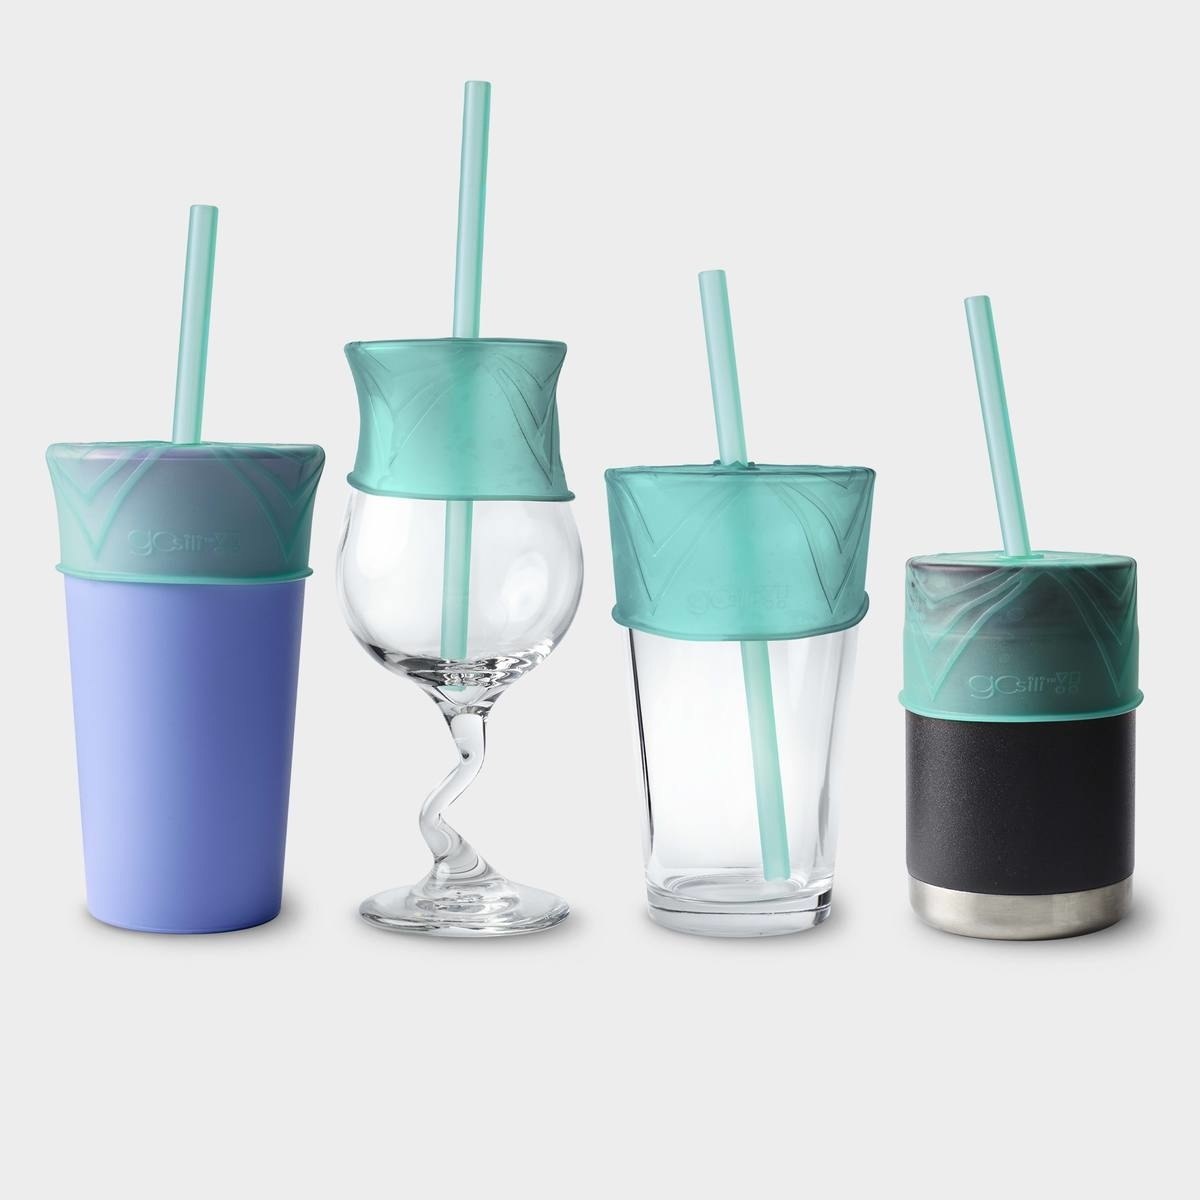 Silikids Universal Silicone Straw Lid + Straw with Case (Sea)